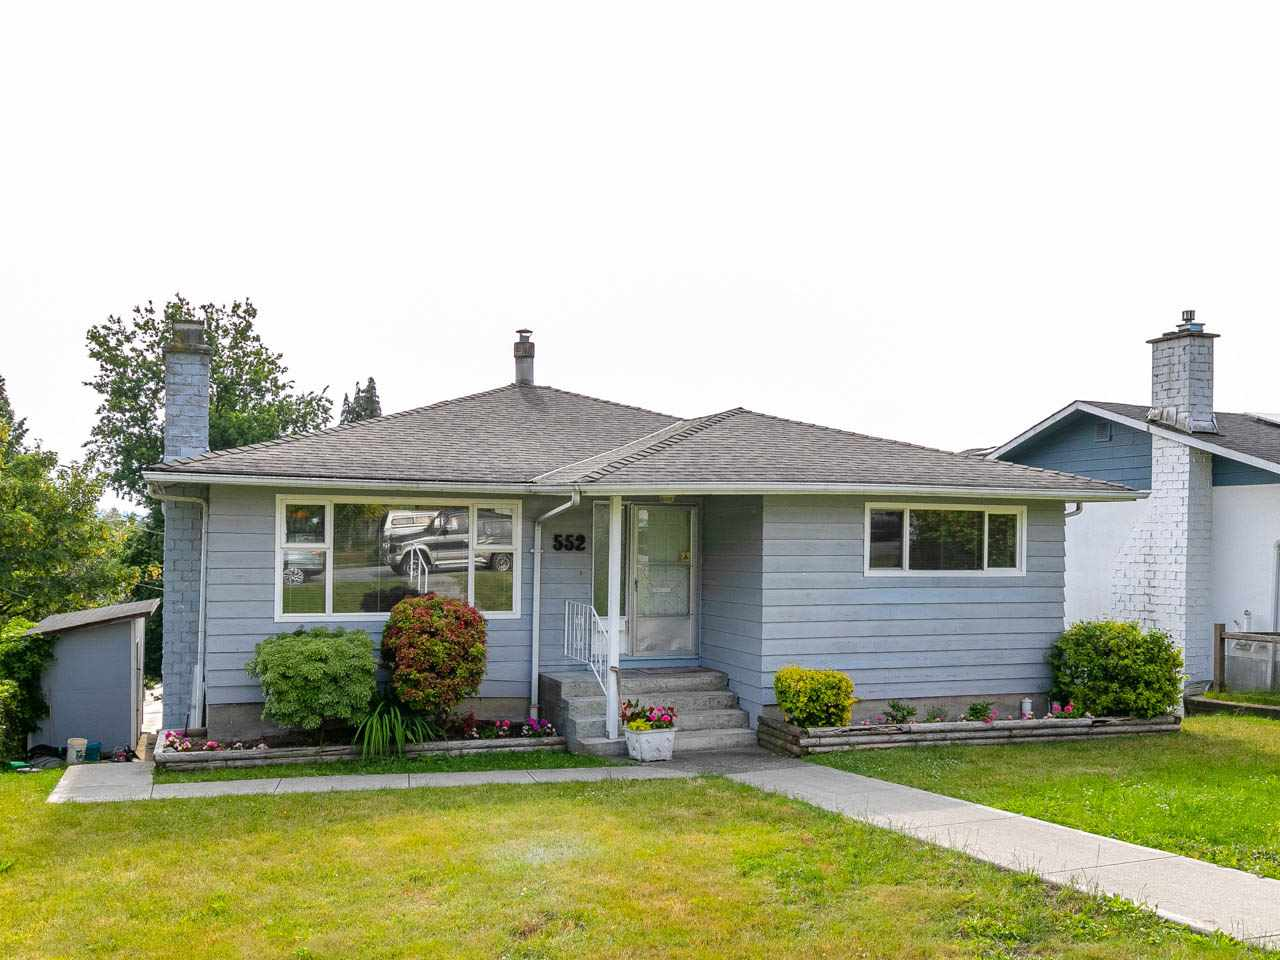 Sold: 552 Garfield Street, New Westminster, BC